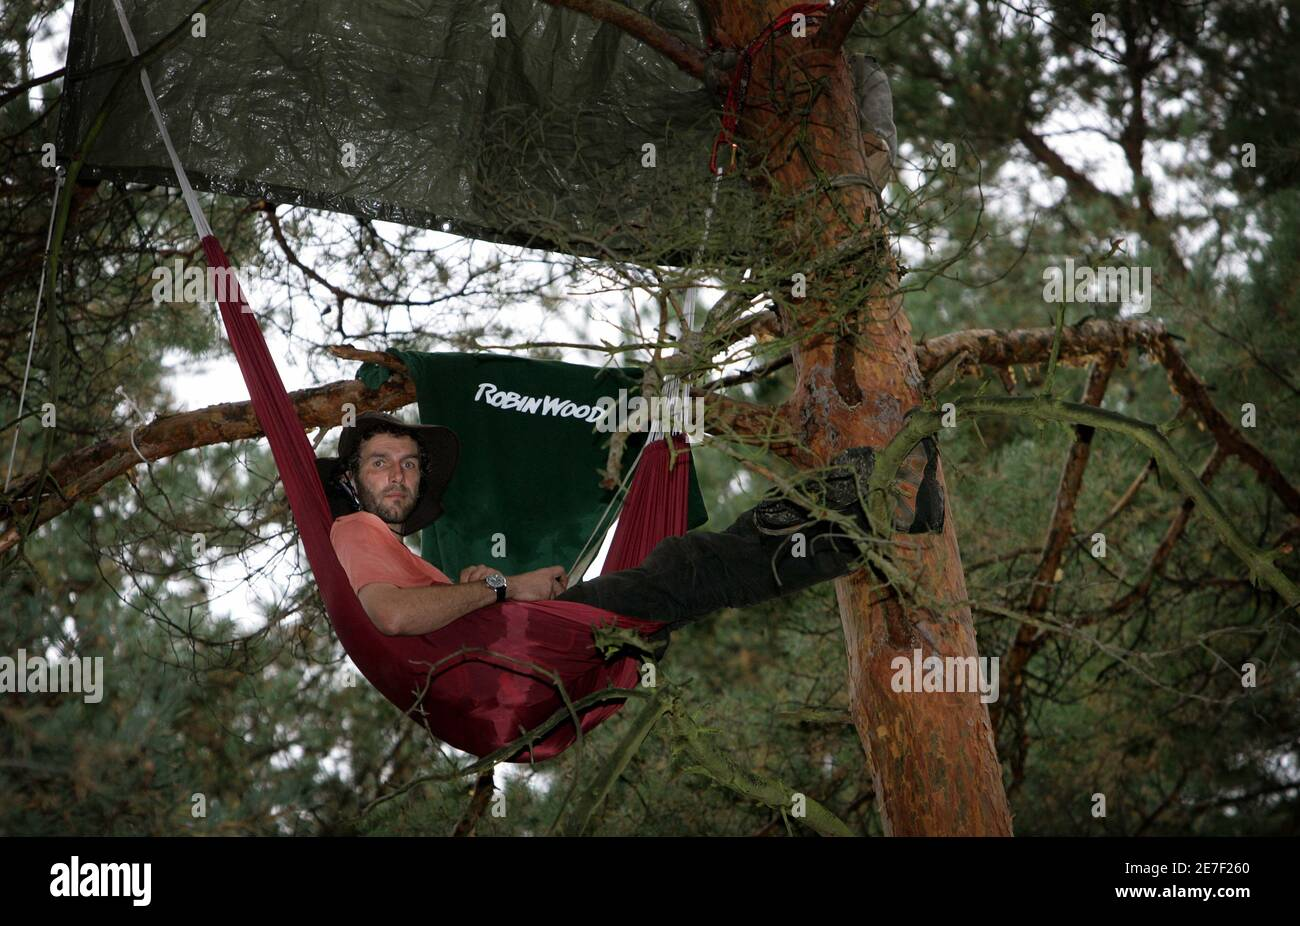 """An activist from Robin Wood, an environmental organisation, sits in a tree in a sealed-off forested area called """"Bannwald"""" before the start of construction works on a new runway near Frankfurt's Rhine-Main airport September 11, 2005. Police expect protesters and environmental activists as construction for the controversial new runway will start next week. REUTERS/Kai Pfaffenbach  KP//CCK Stock Photo"""